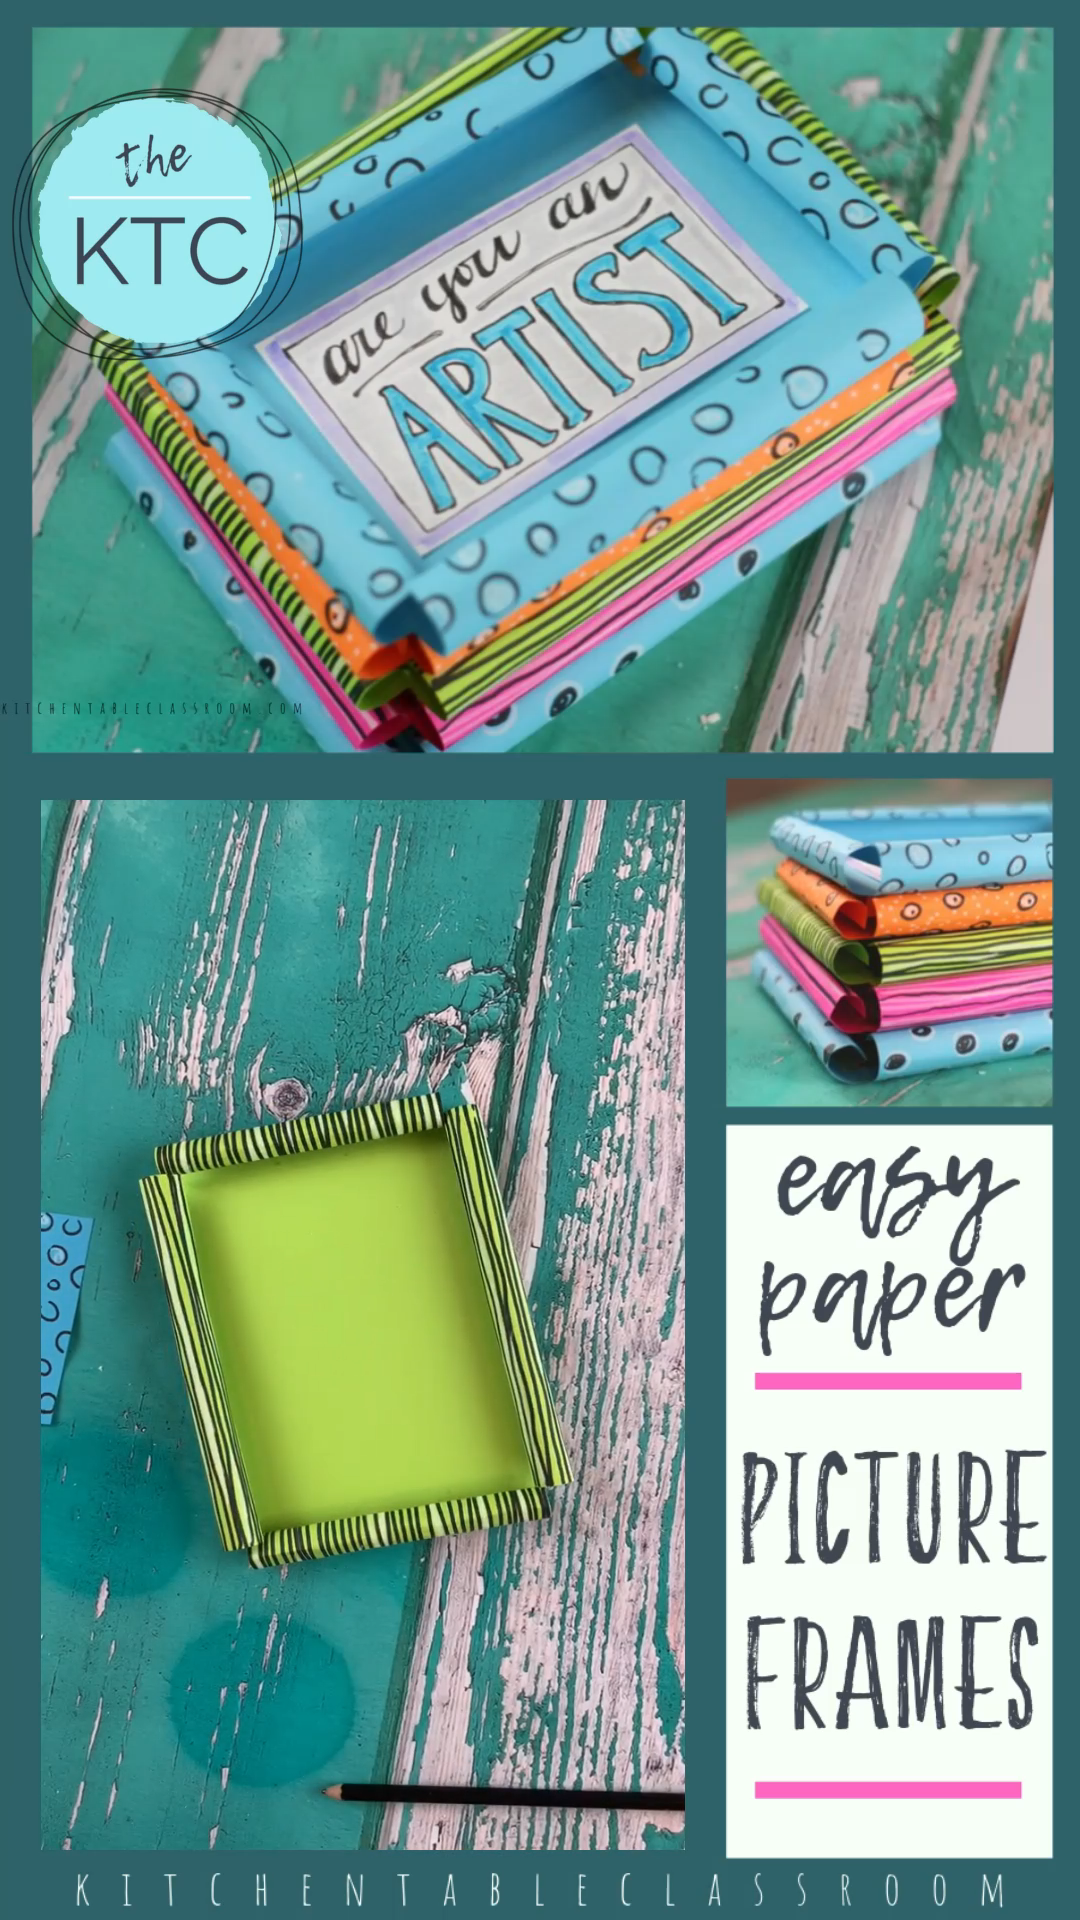 These easy paper picture frames take a piece of paper or card stock and turn it into a picture frame in minute.  Frame a special picture or drawing and you've got a sweet keepsake gift! #pictureframe #homemadegift #papercrafts #craftsforkids